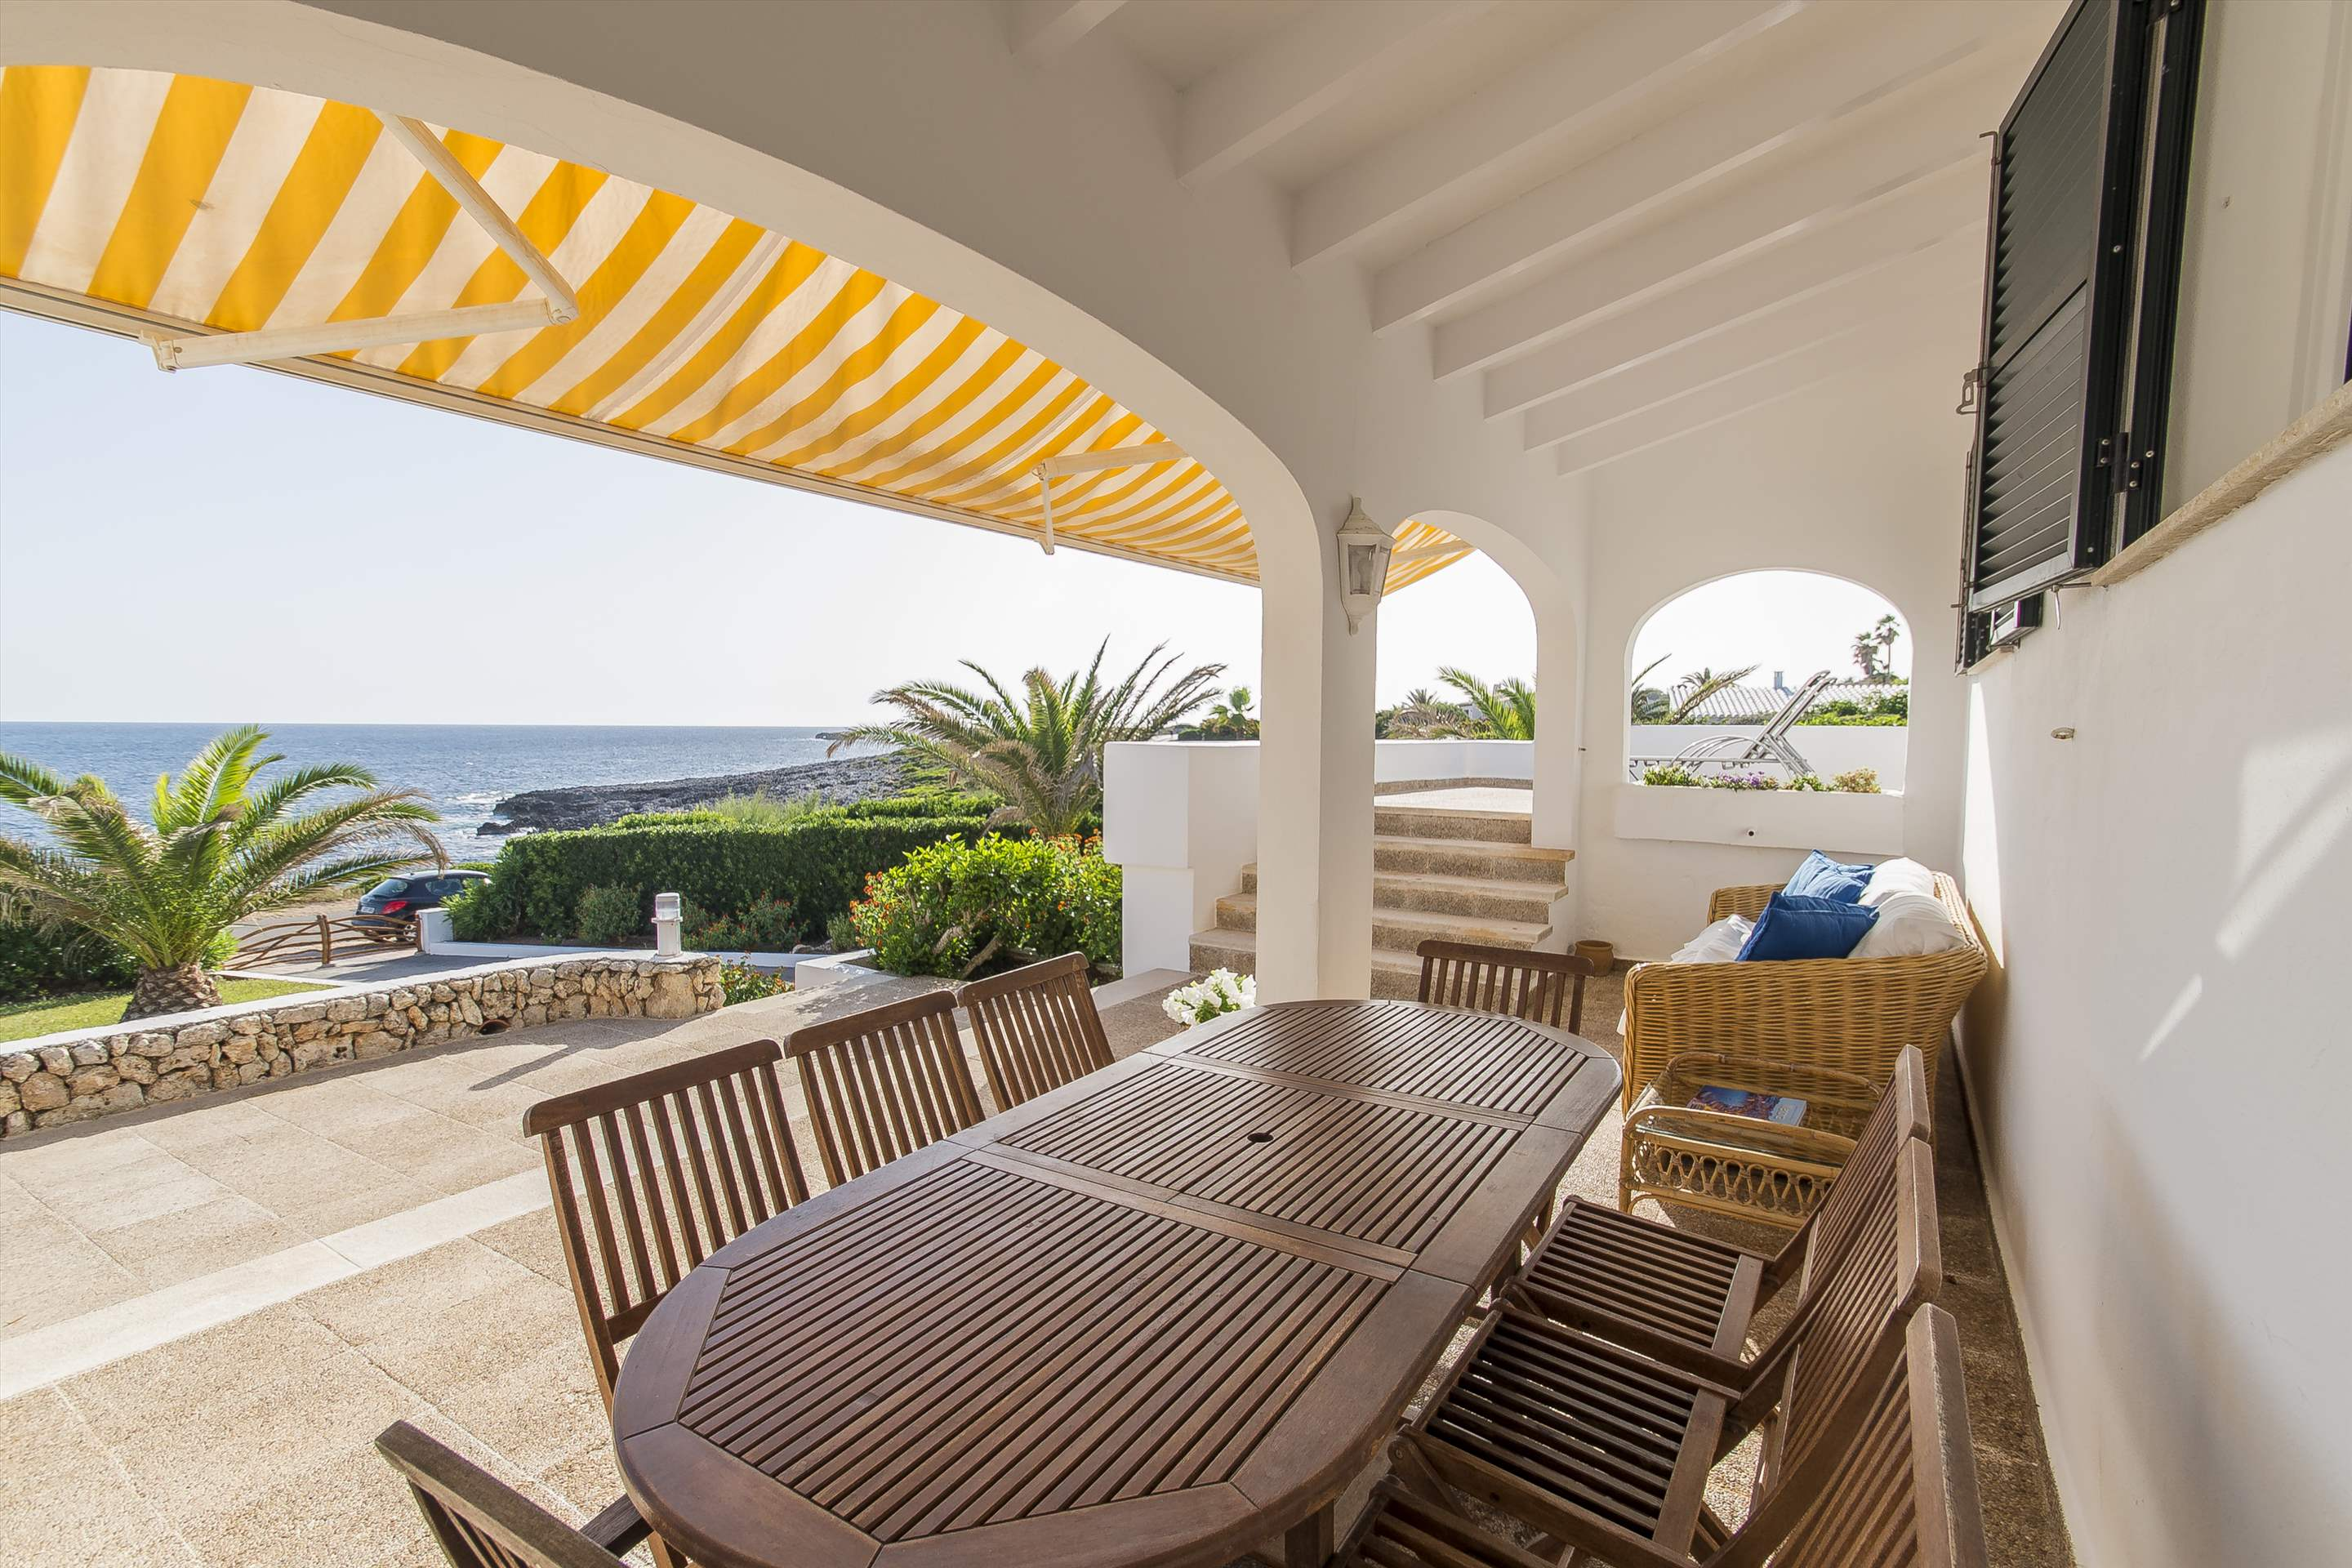 Villa El Güerito, 4 bedroom villa in Mahon, San Luis & South East, Menorca Photo #3